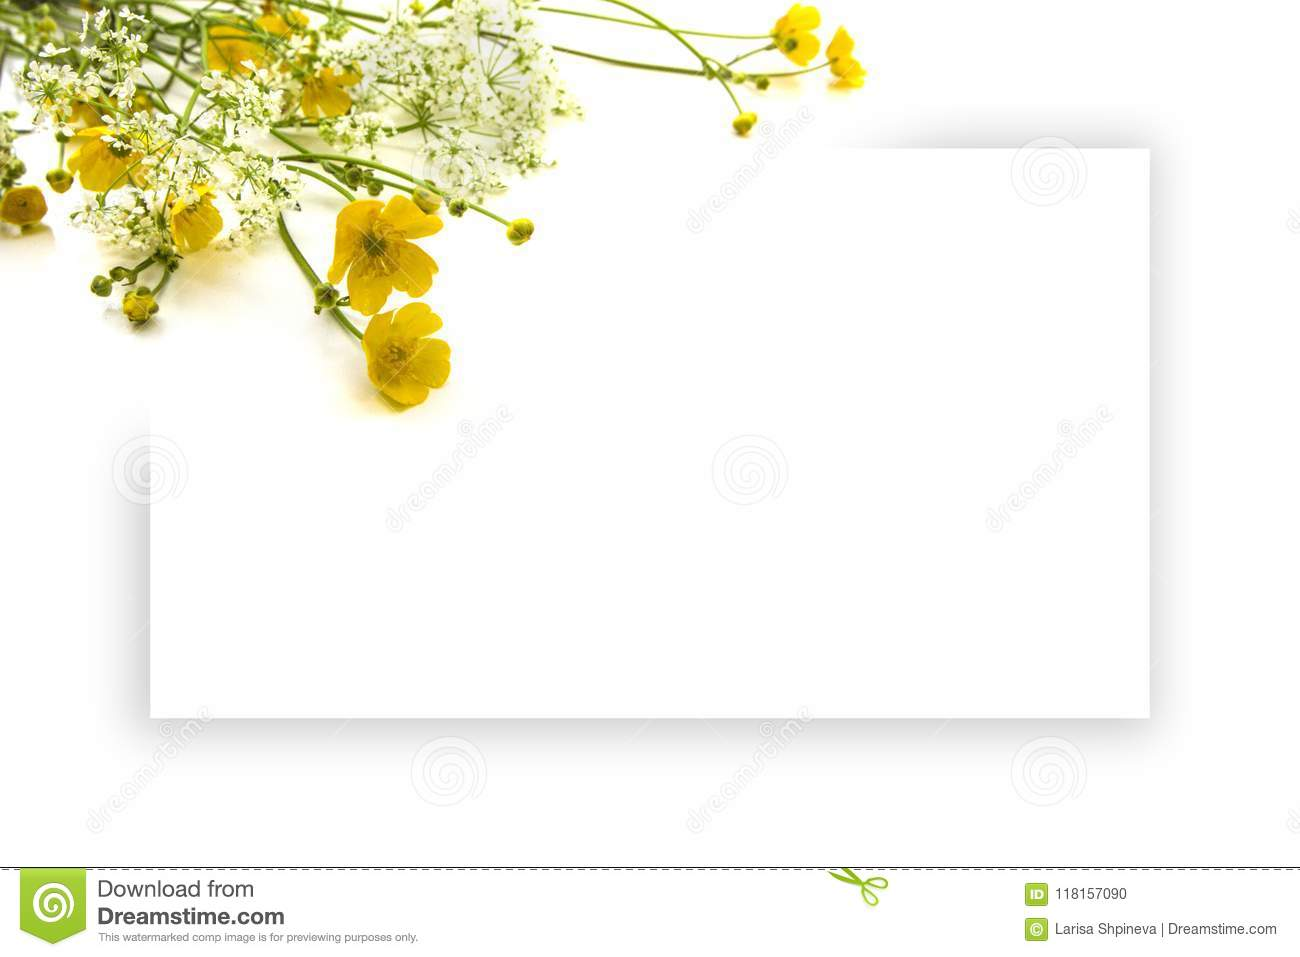 https www dreamstime com summer yellow white wildflowers blank greeting card background sheet paper congratulations empty space image118157090